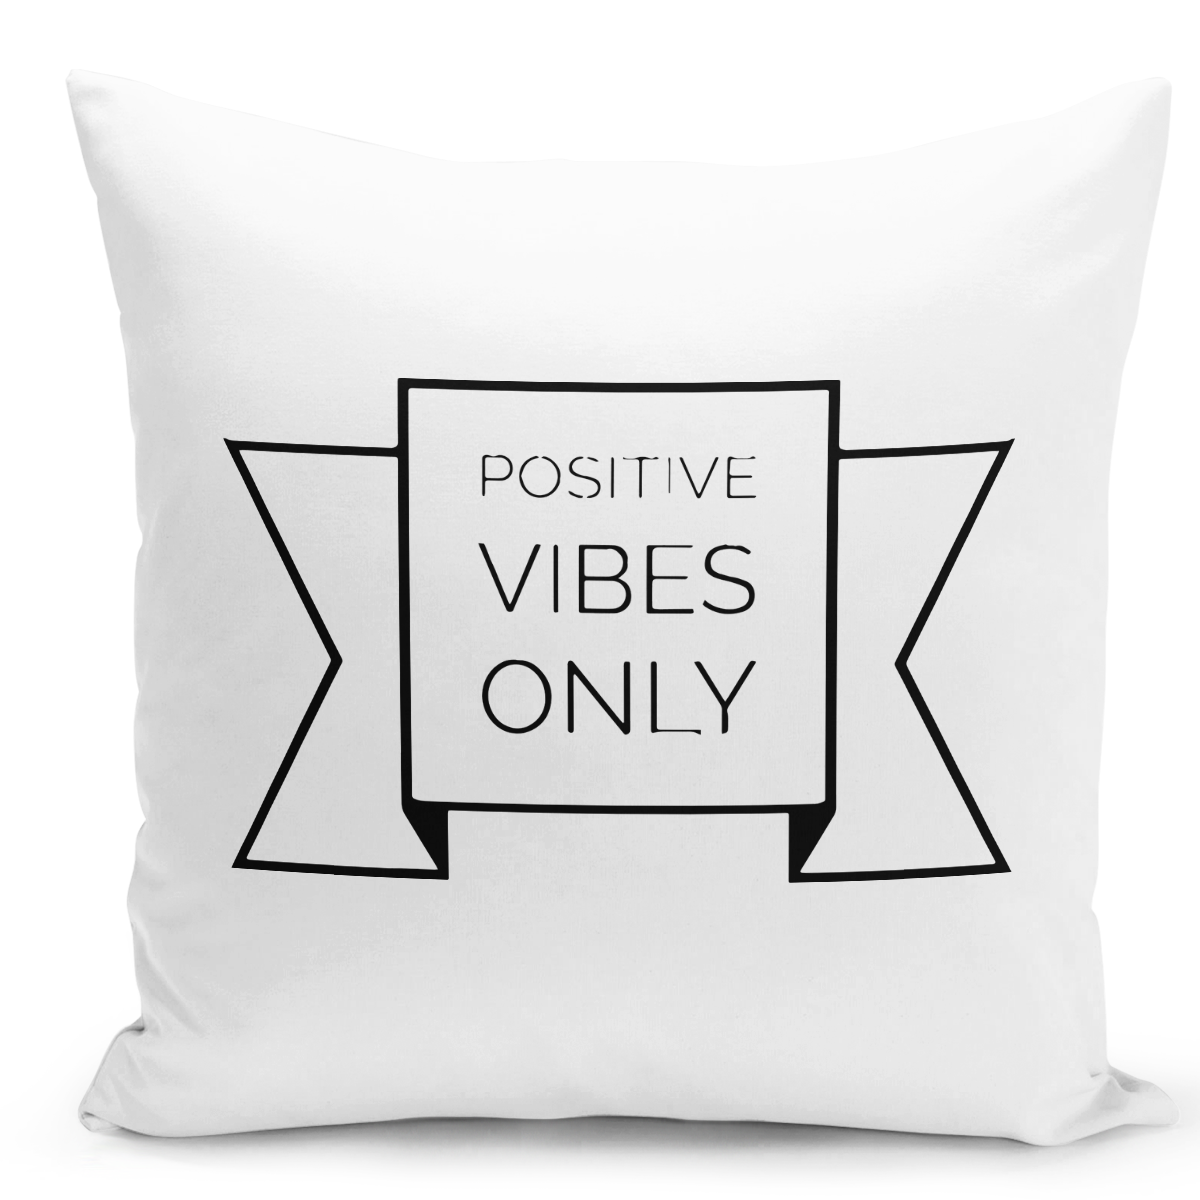 16x16-inch-Throw-Pillow-for-Home-Decor-with-Stuffing-Positive-Vibes-Only-